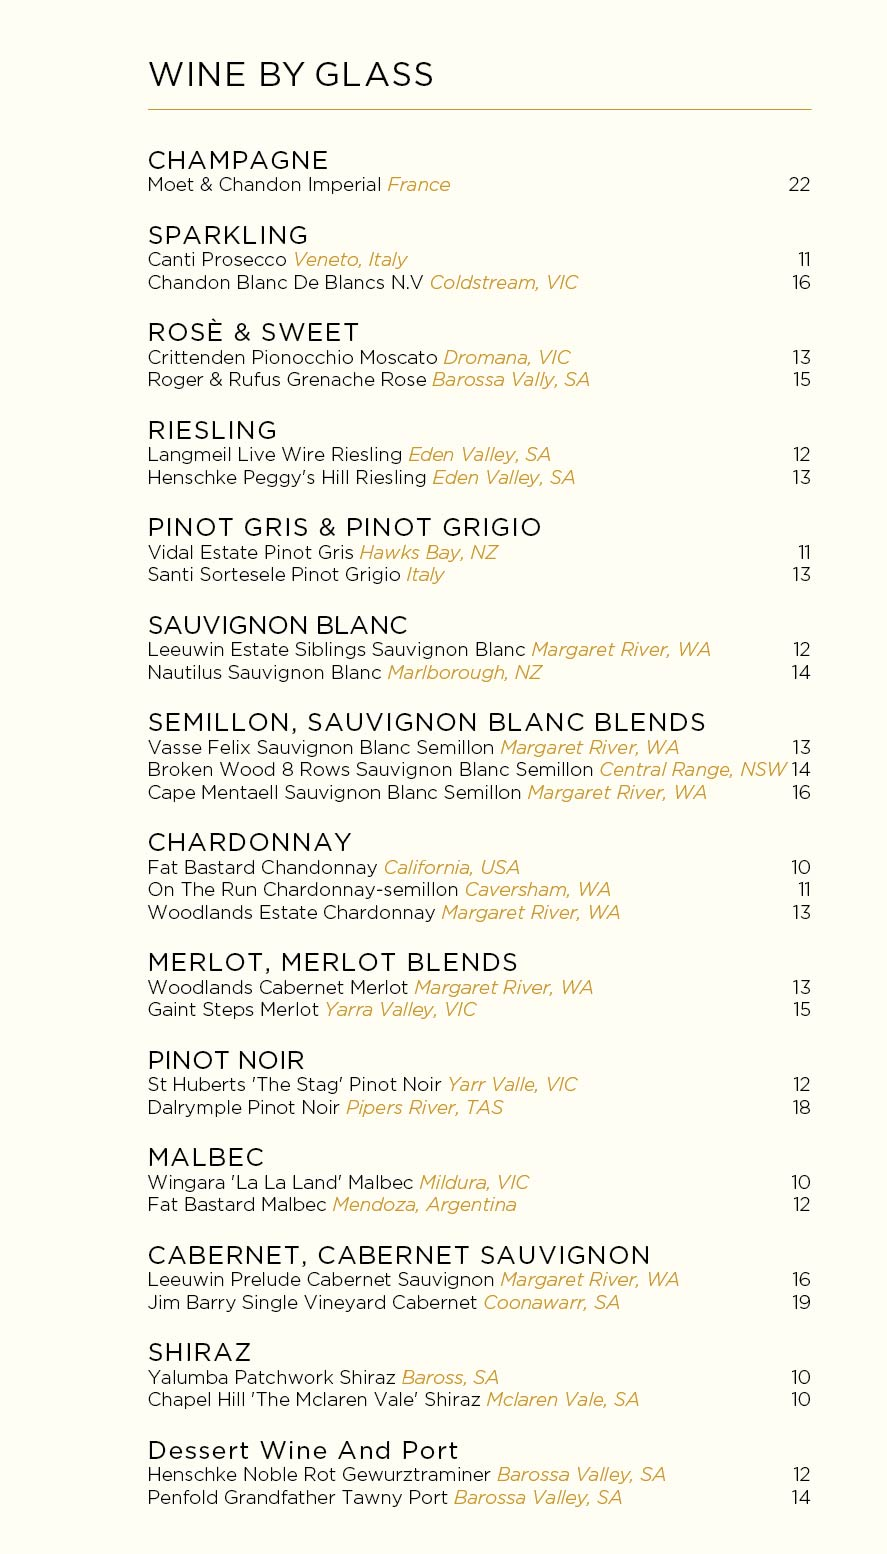 150x263mm_WineList_8point_01-02.jpg